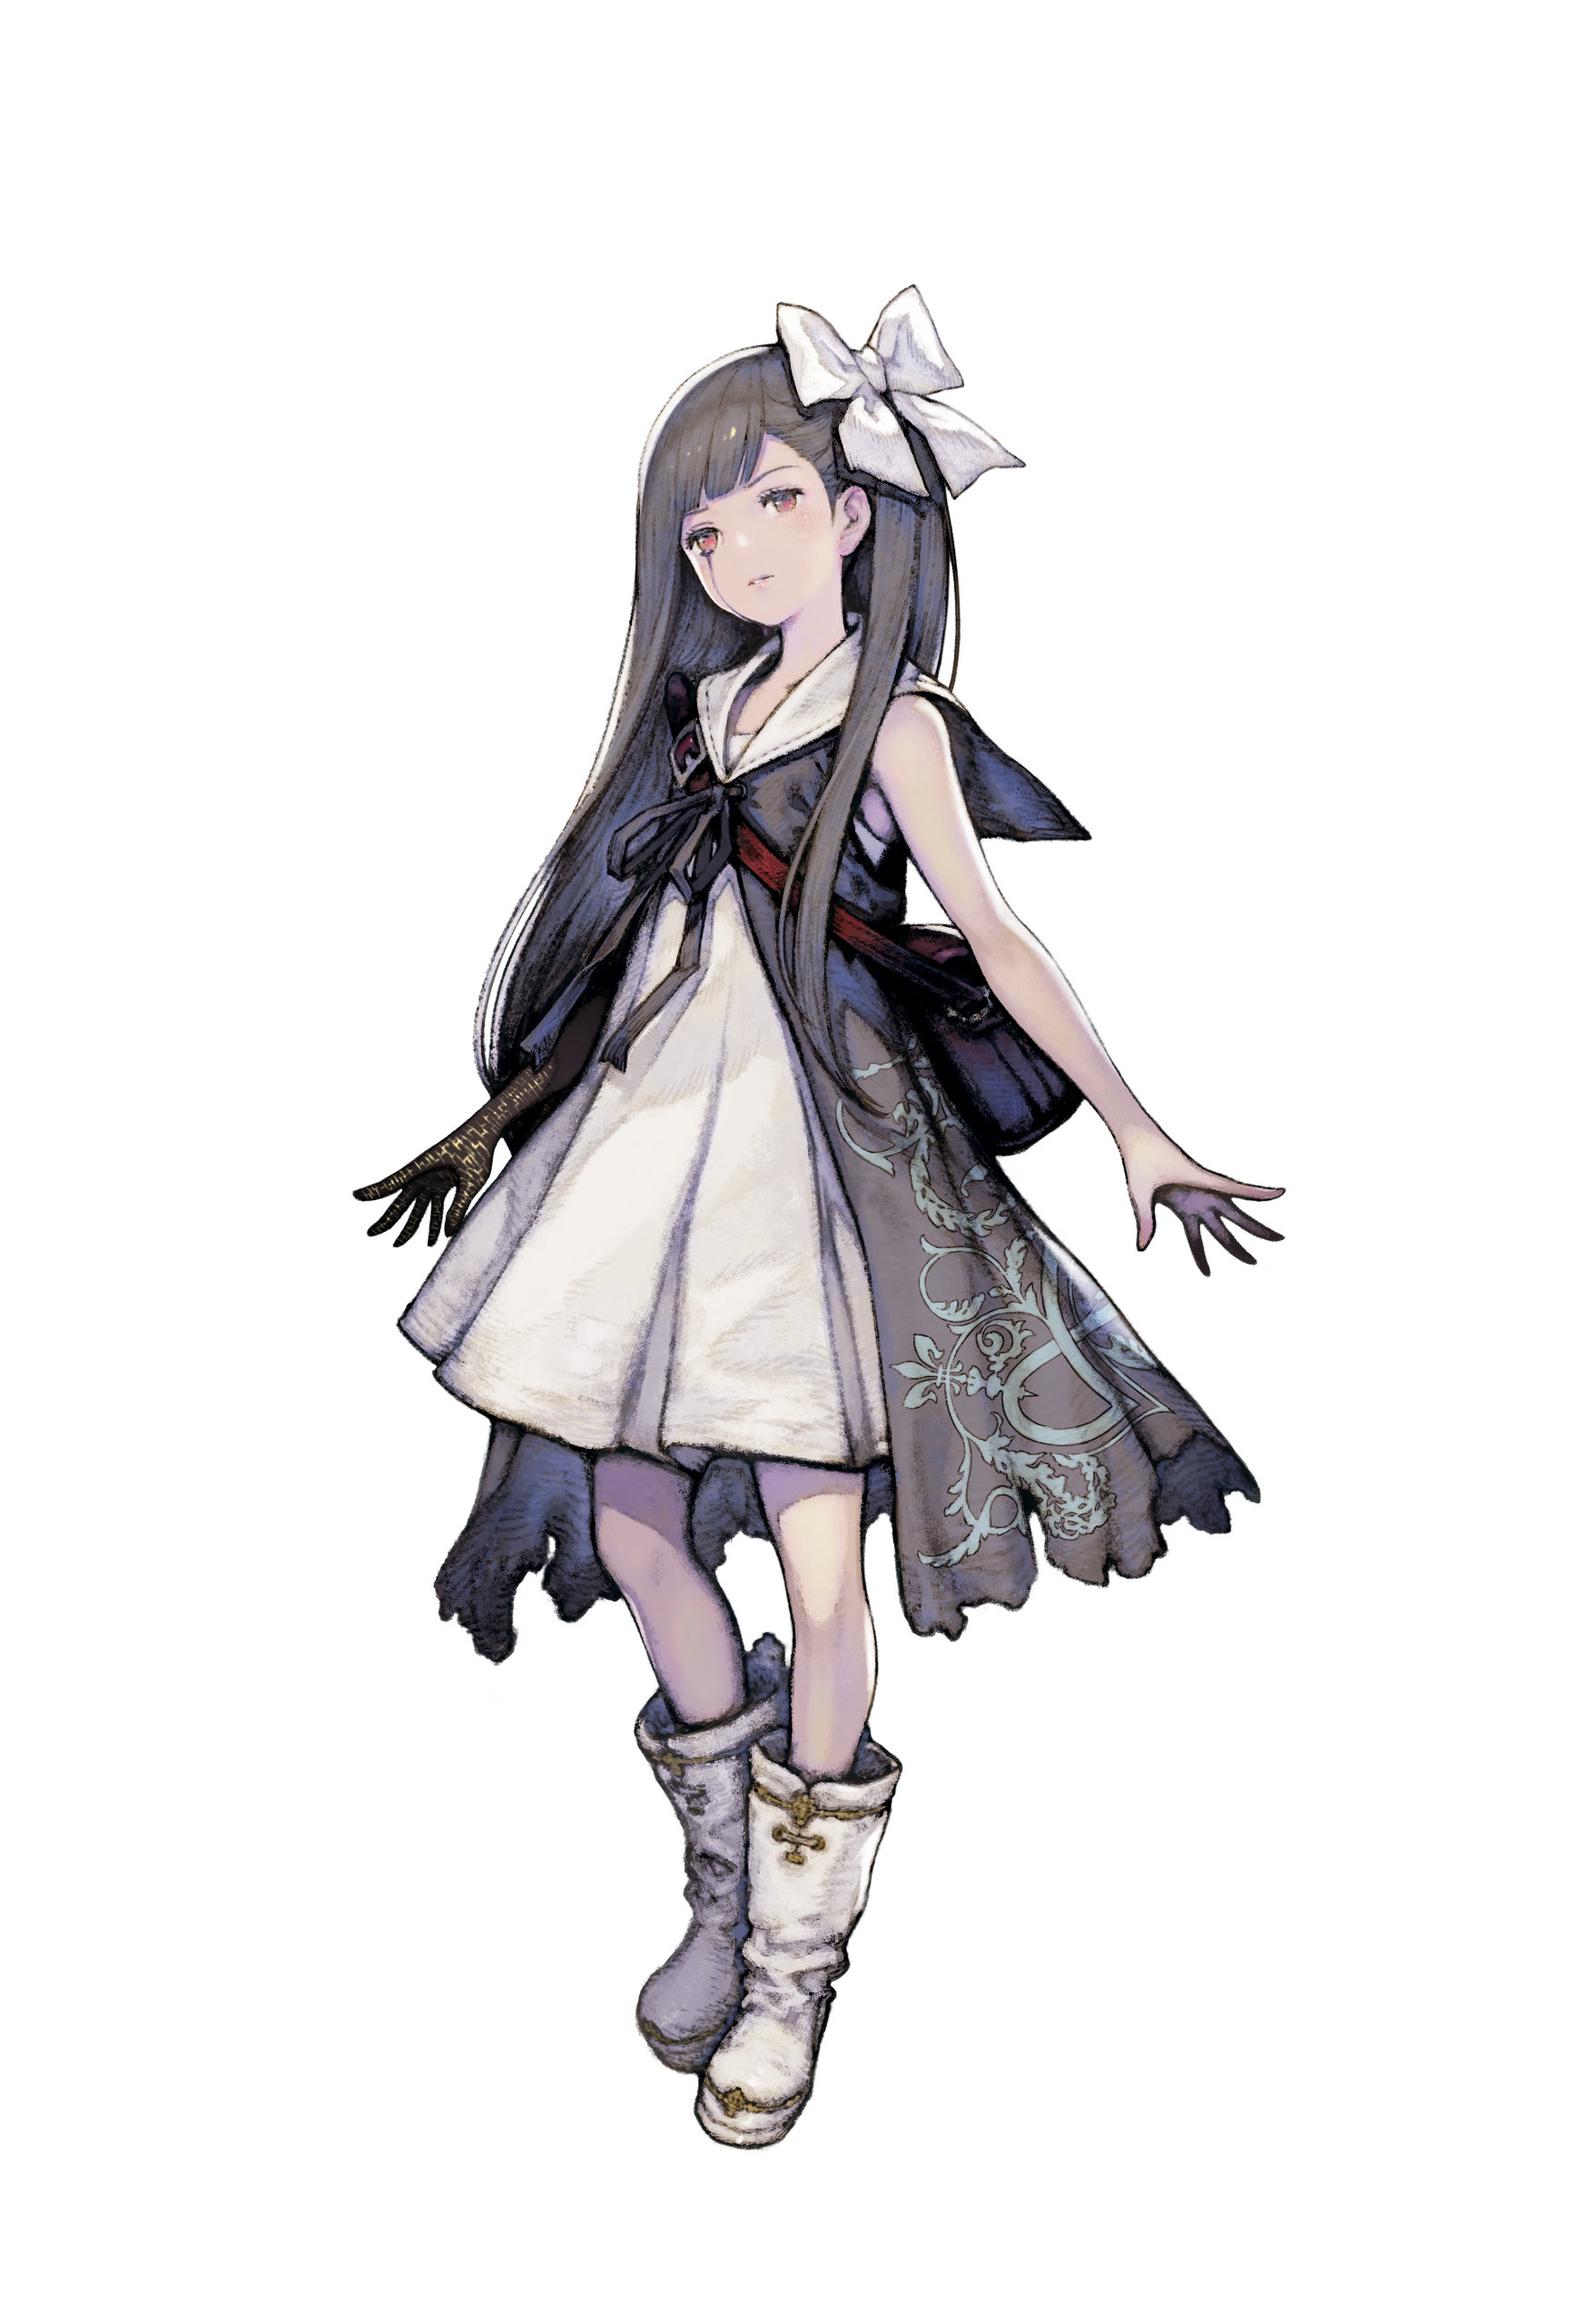 Artwork Of The Little Girl From The Mermaid Episode In NieR Replicant Remake